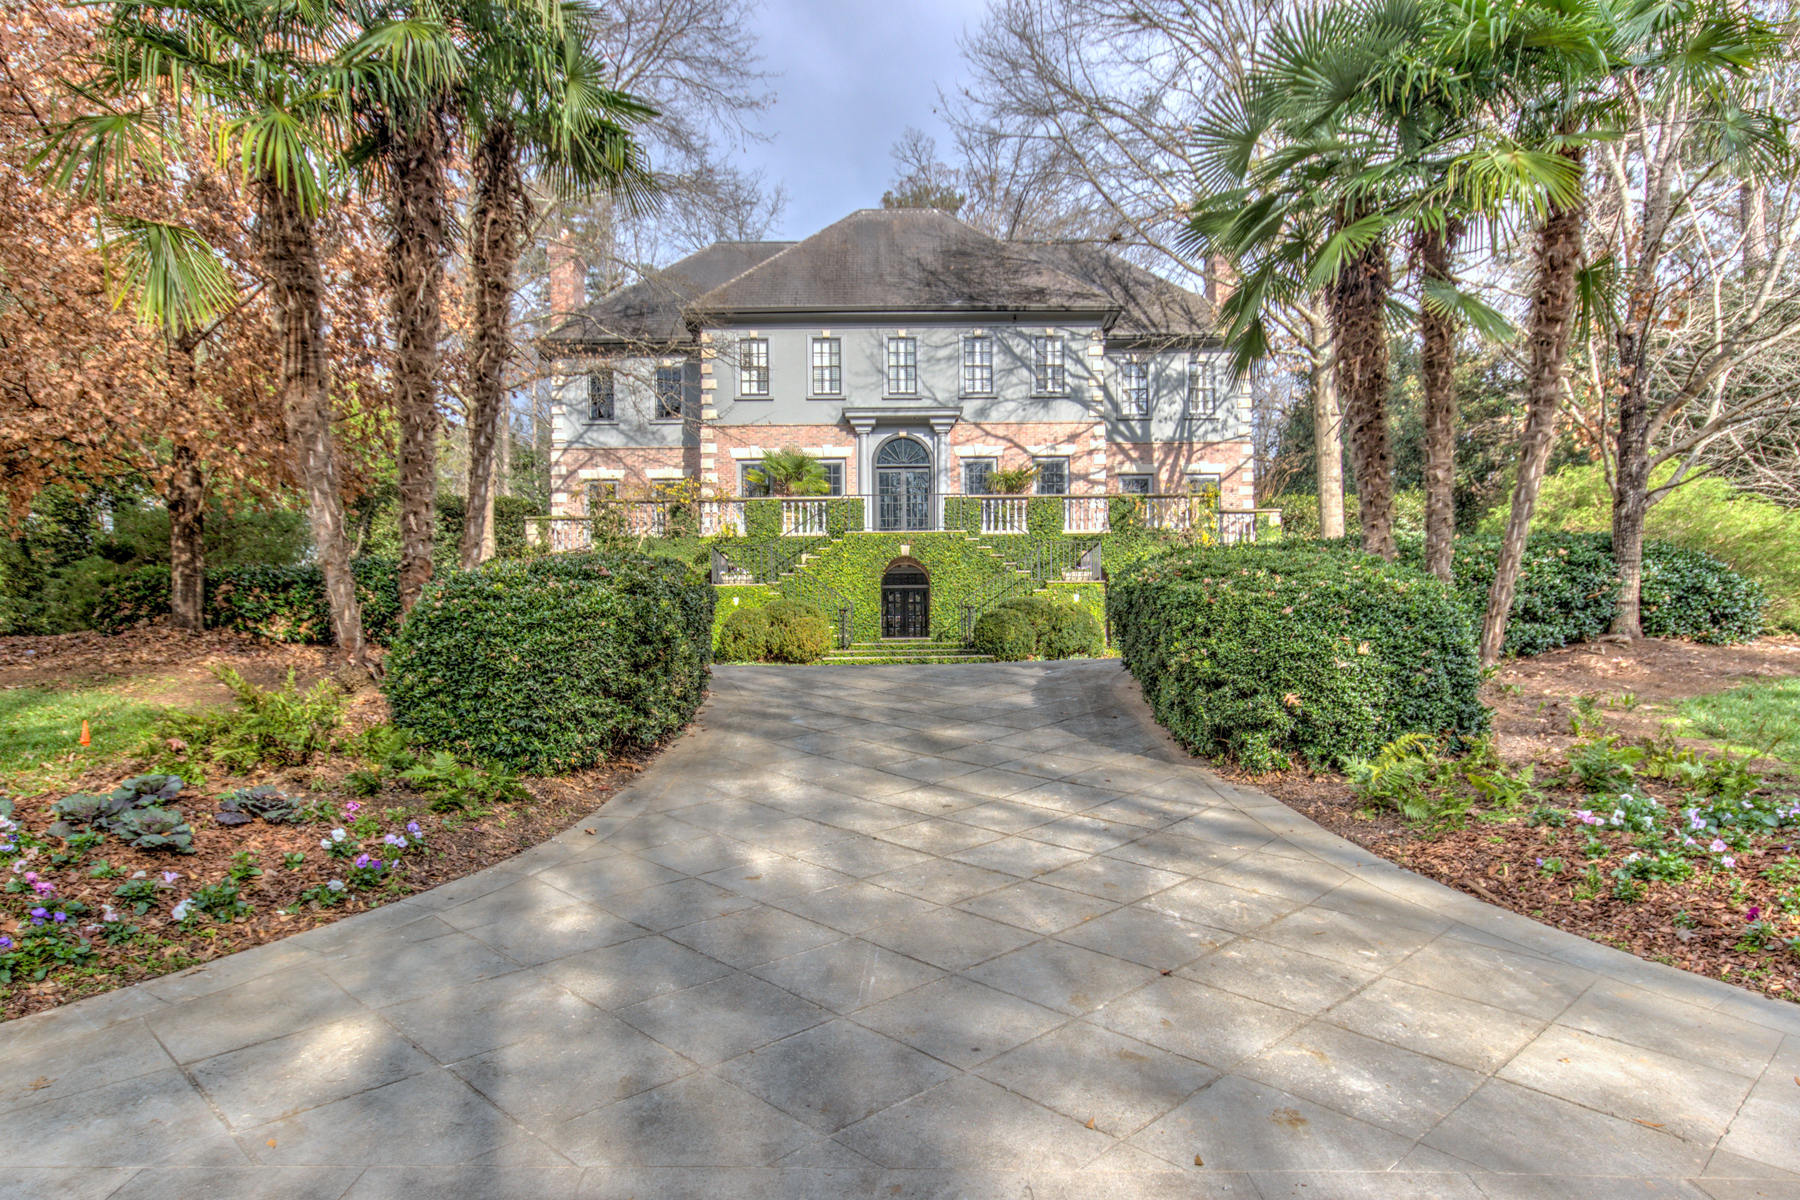 Villa per Vendita alle ore Captivating Estate With Exquisite Detail Throughout 730 Conway Glen Drive NW Buckhead, Atlanta, Georgia 30327 Stati Uniti